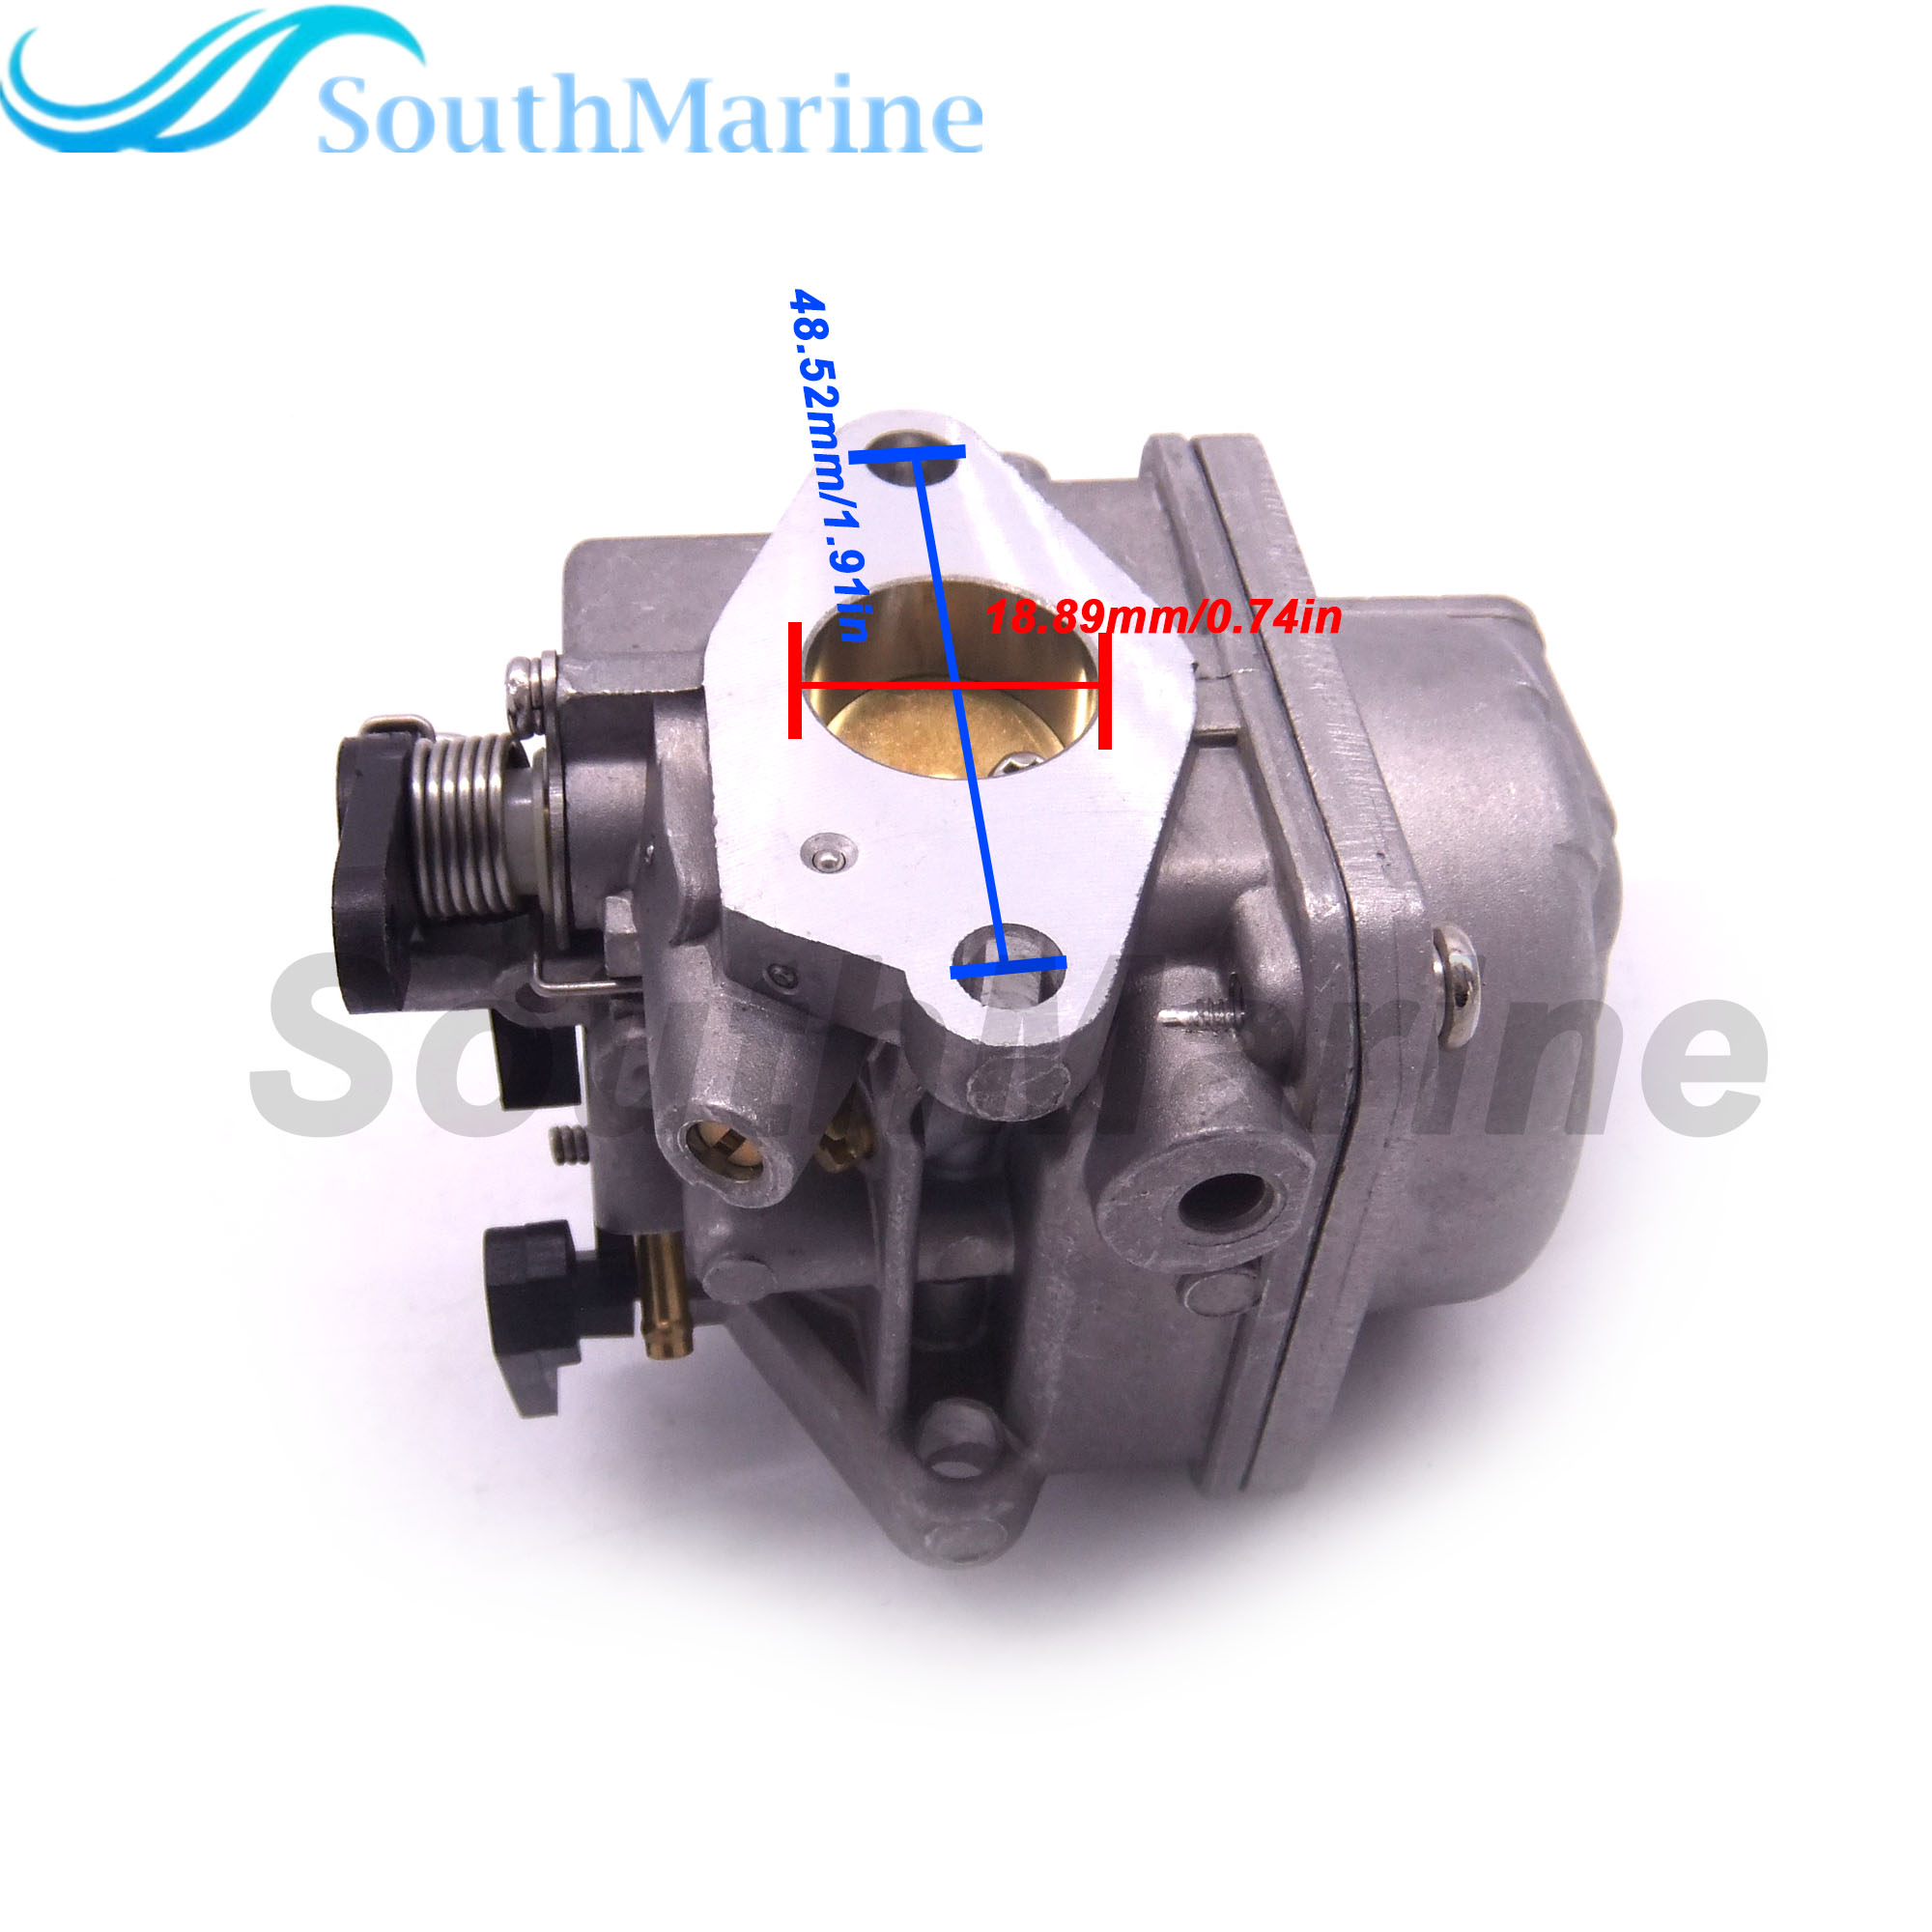 Image 4 - 3R4 03200 0 3R4 03200 1 3R4032000M 3R4032001M Carburetor Assy for Tohatsu Nissan 4 stroke 6HP MFS6 NFS6 A2 B Outboard Motor-in Boat Engine from Automobiles & Motorcycles